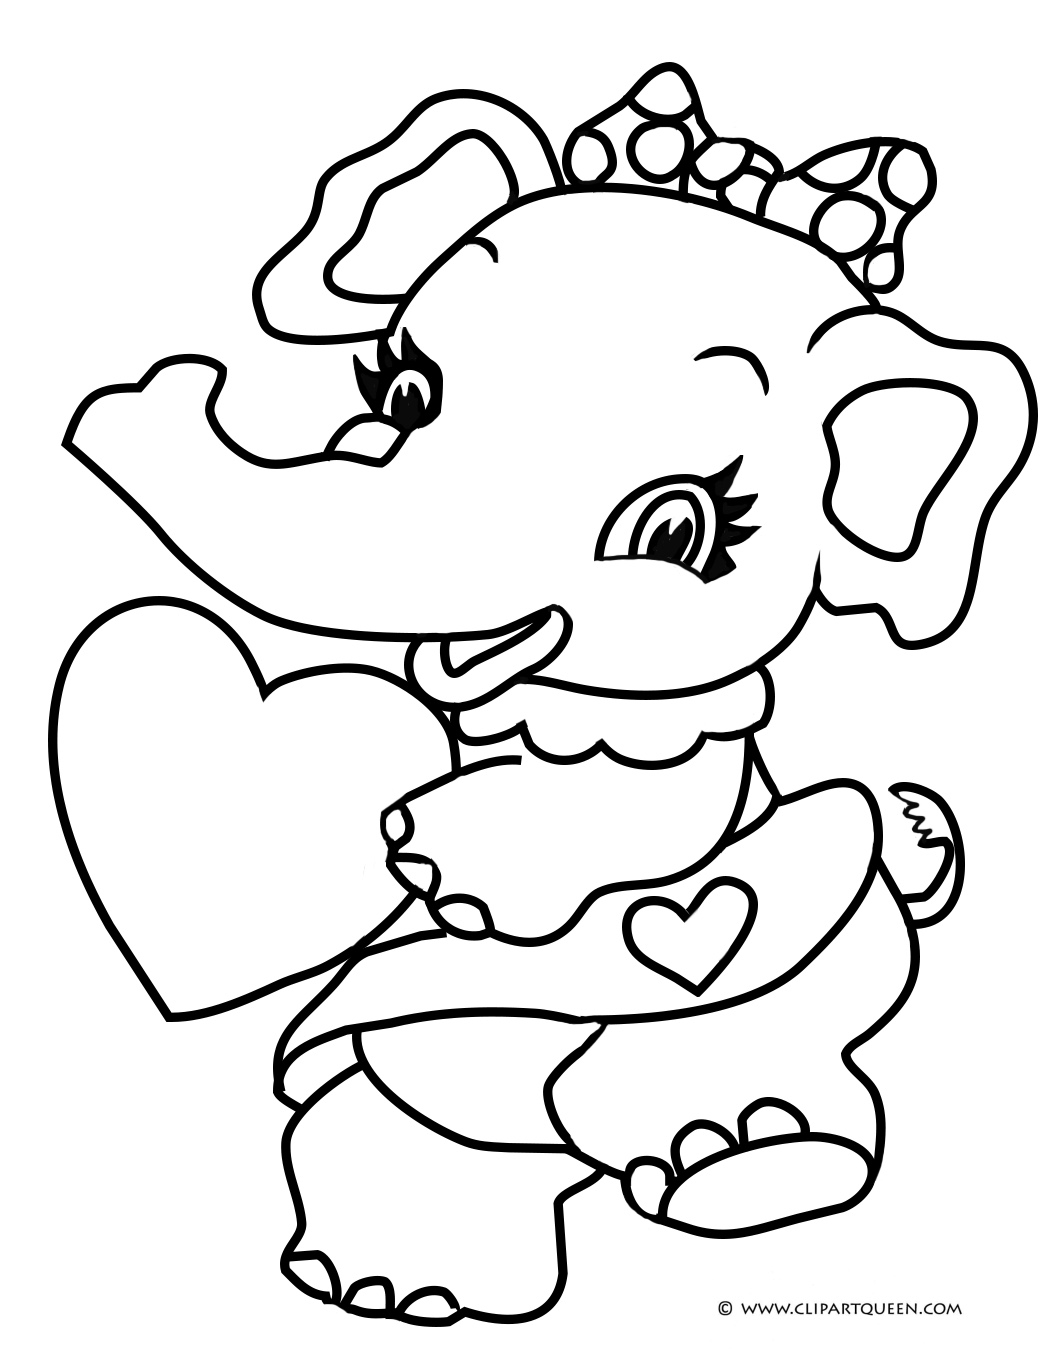 coloring pages valentinesday - photo#21